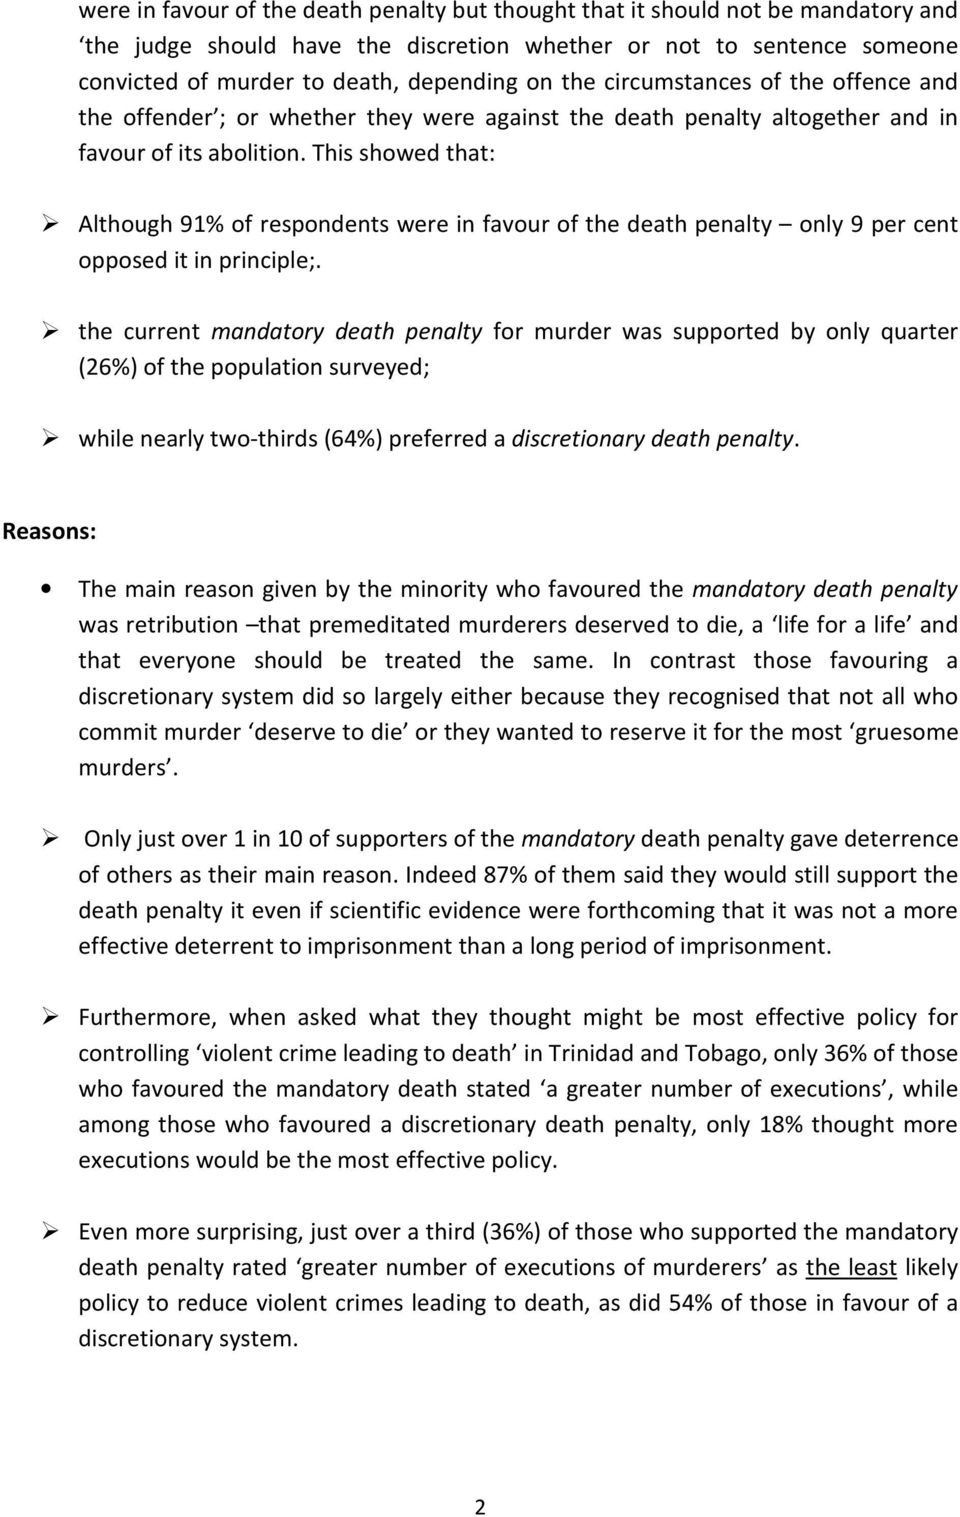 This showed that: Although 91% of respondents were in favour of the death penalty only 9 per opposed it in principle;.